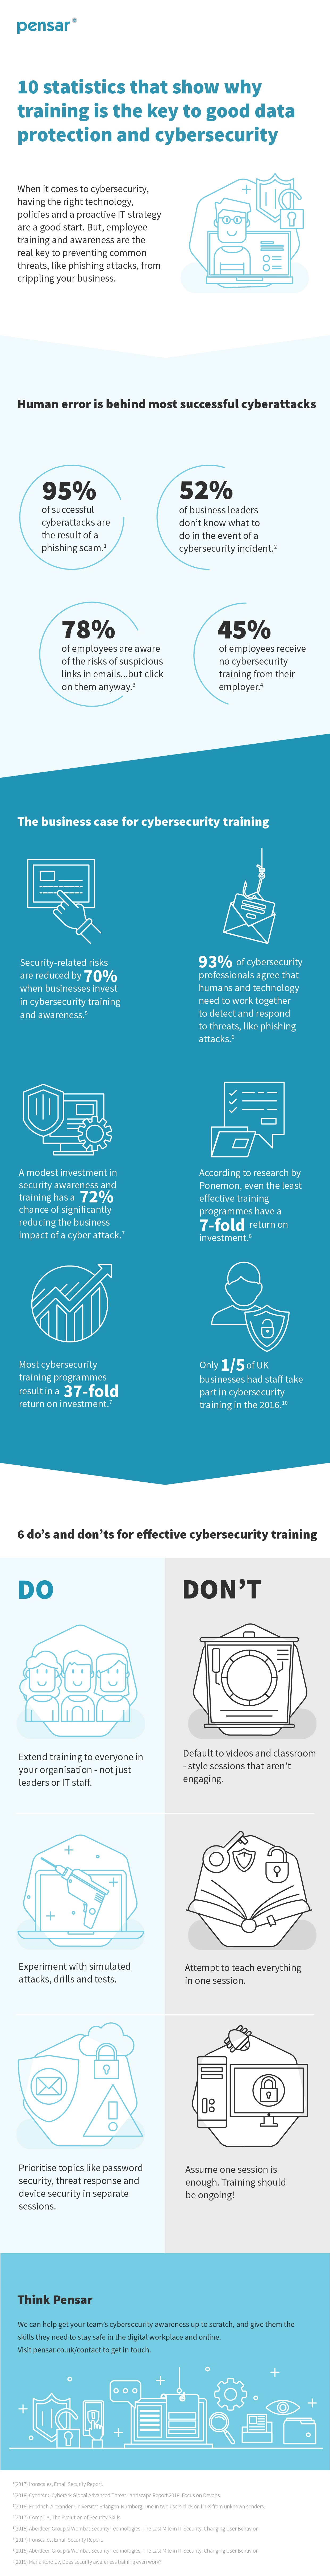 Pensar Infographic - 10 statistics that show why training is the key to good data protection and cybersecurity-2-01